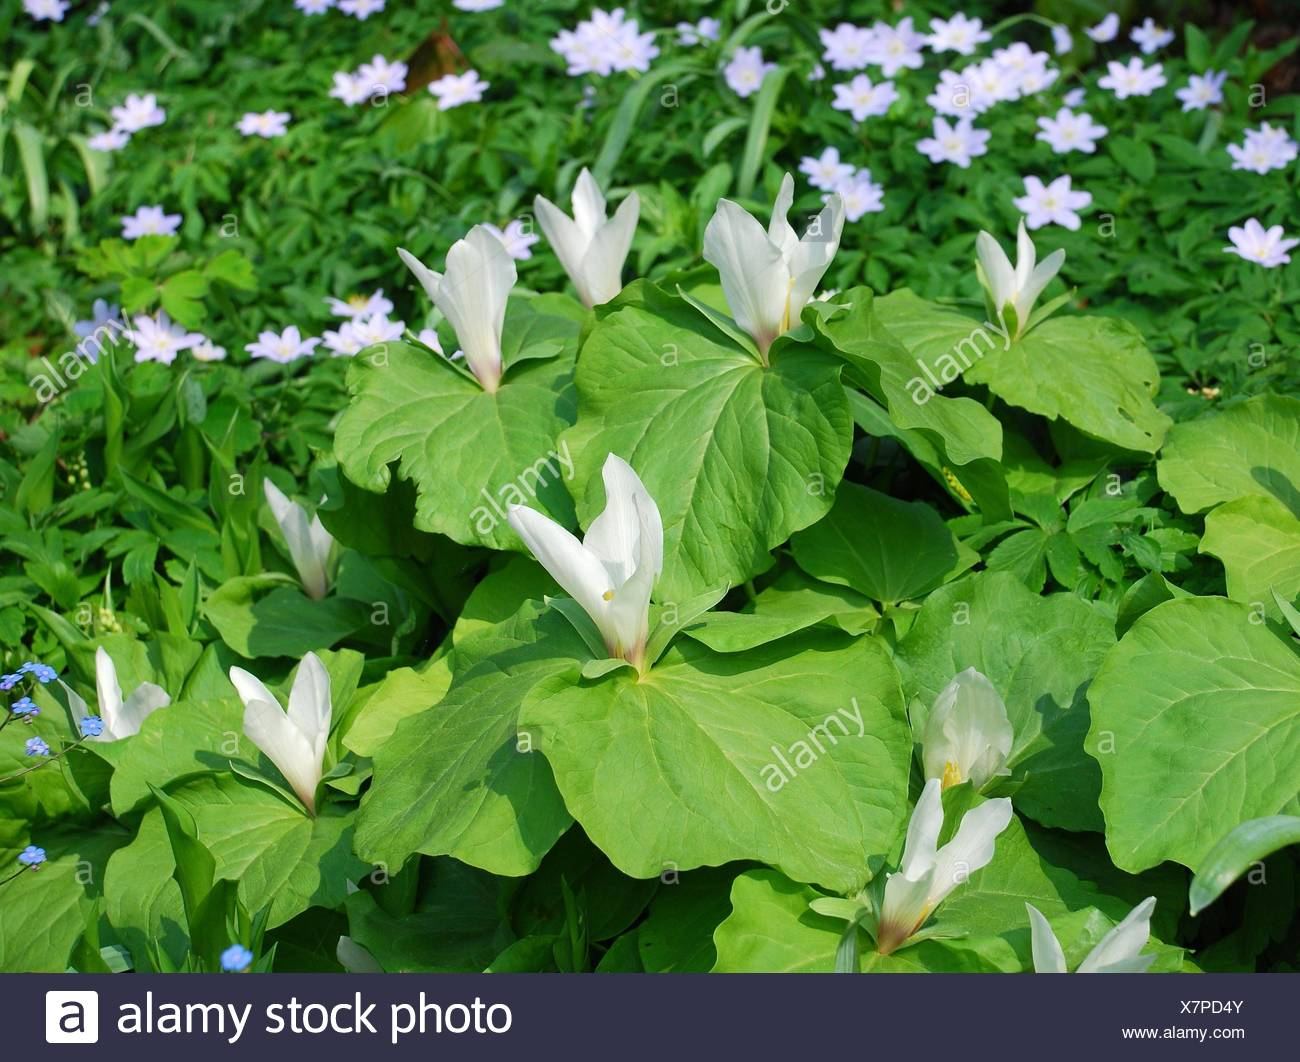 Trillium Group Of White Flowers And Big Green Leaves Stock Photo